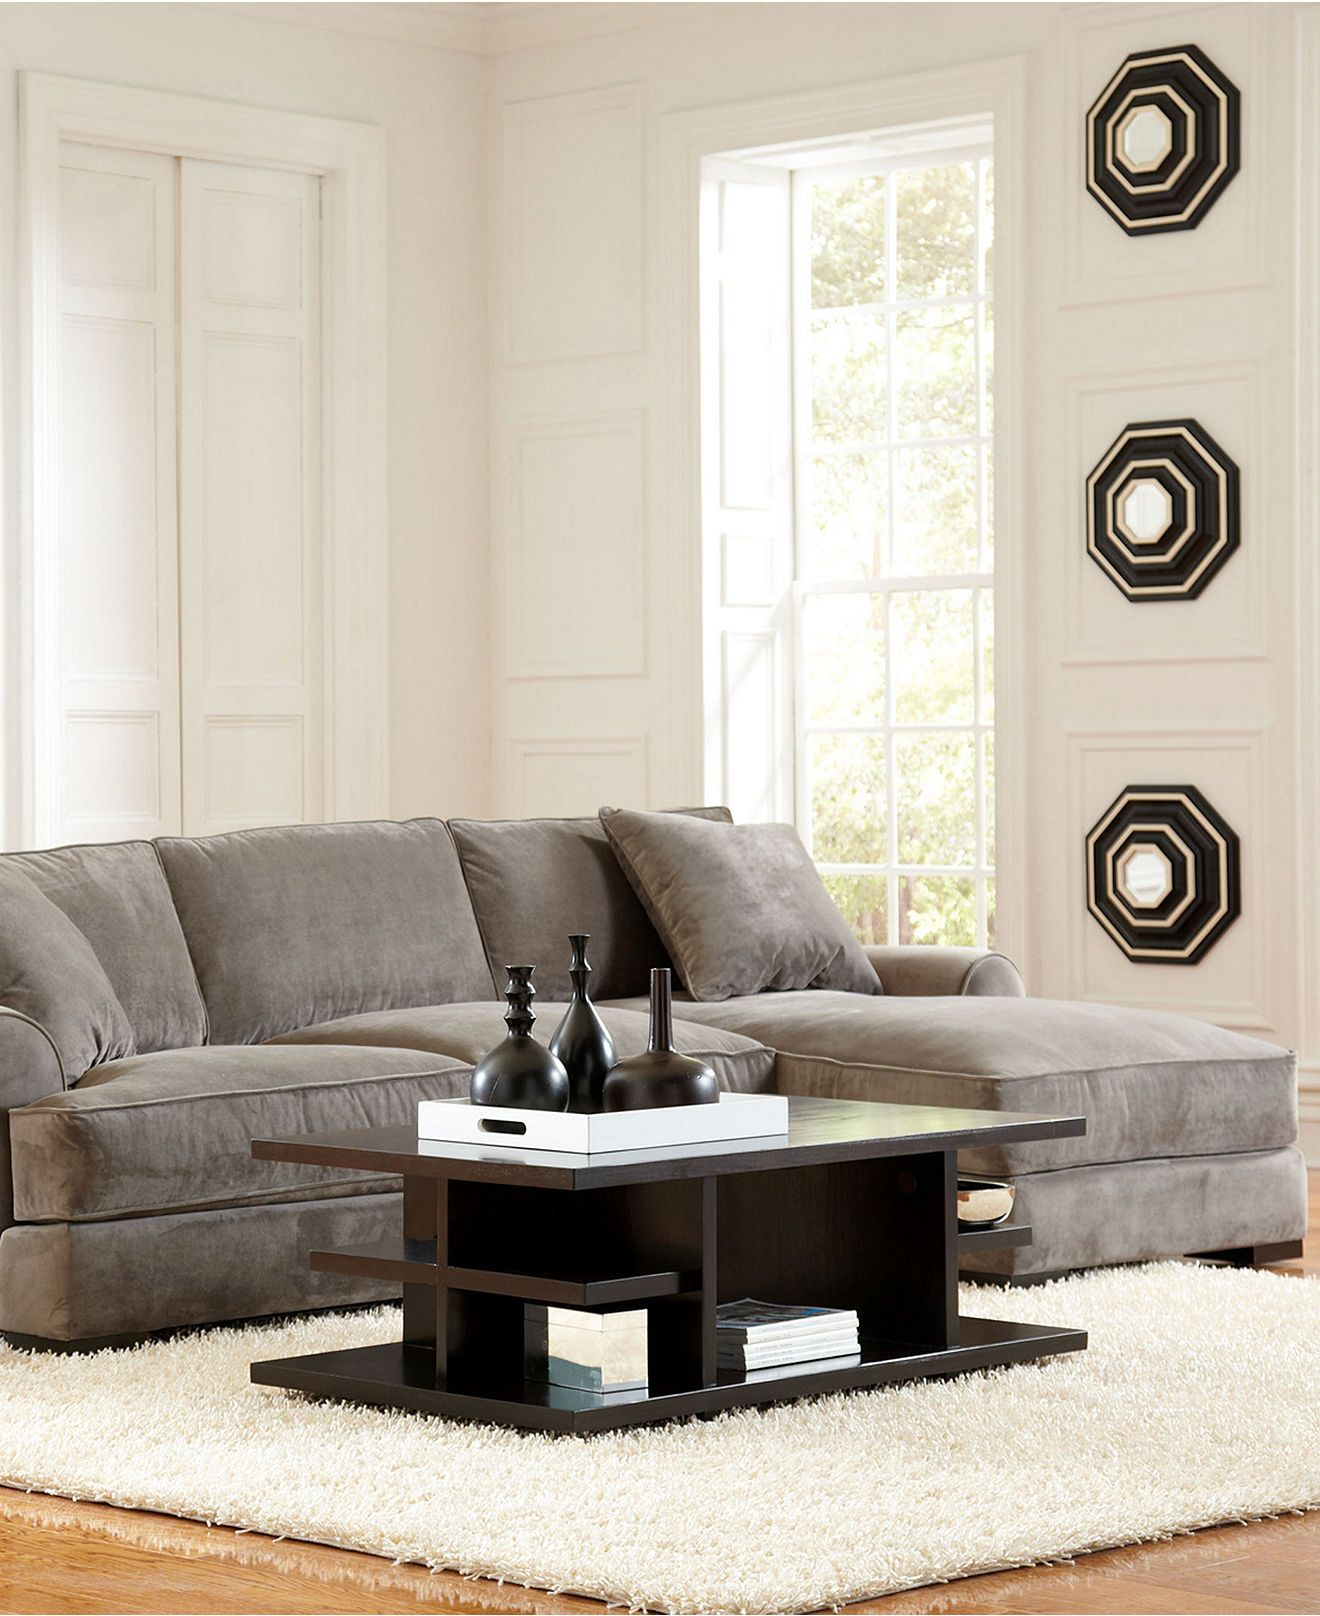 Macysfurniture Com: Chaise Sofa From Macy's. Best Sofa Ever. We Have This Same